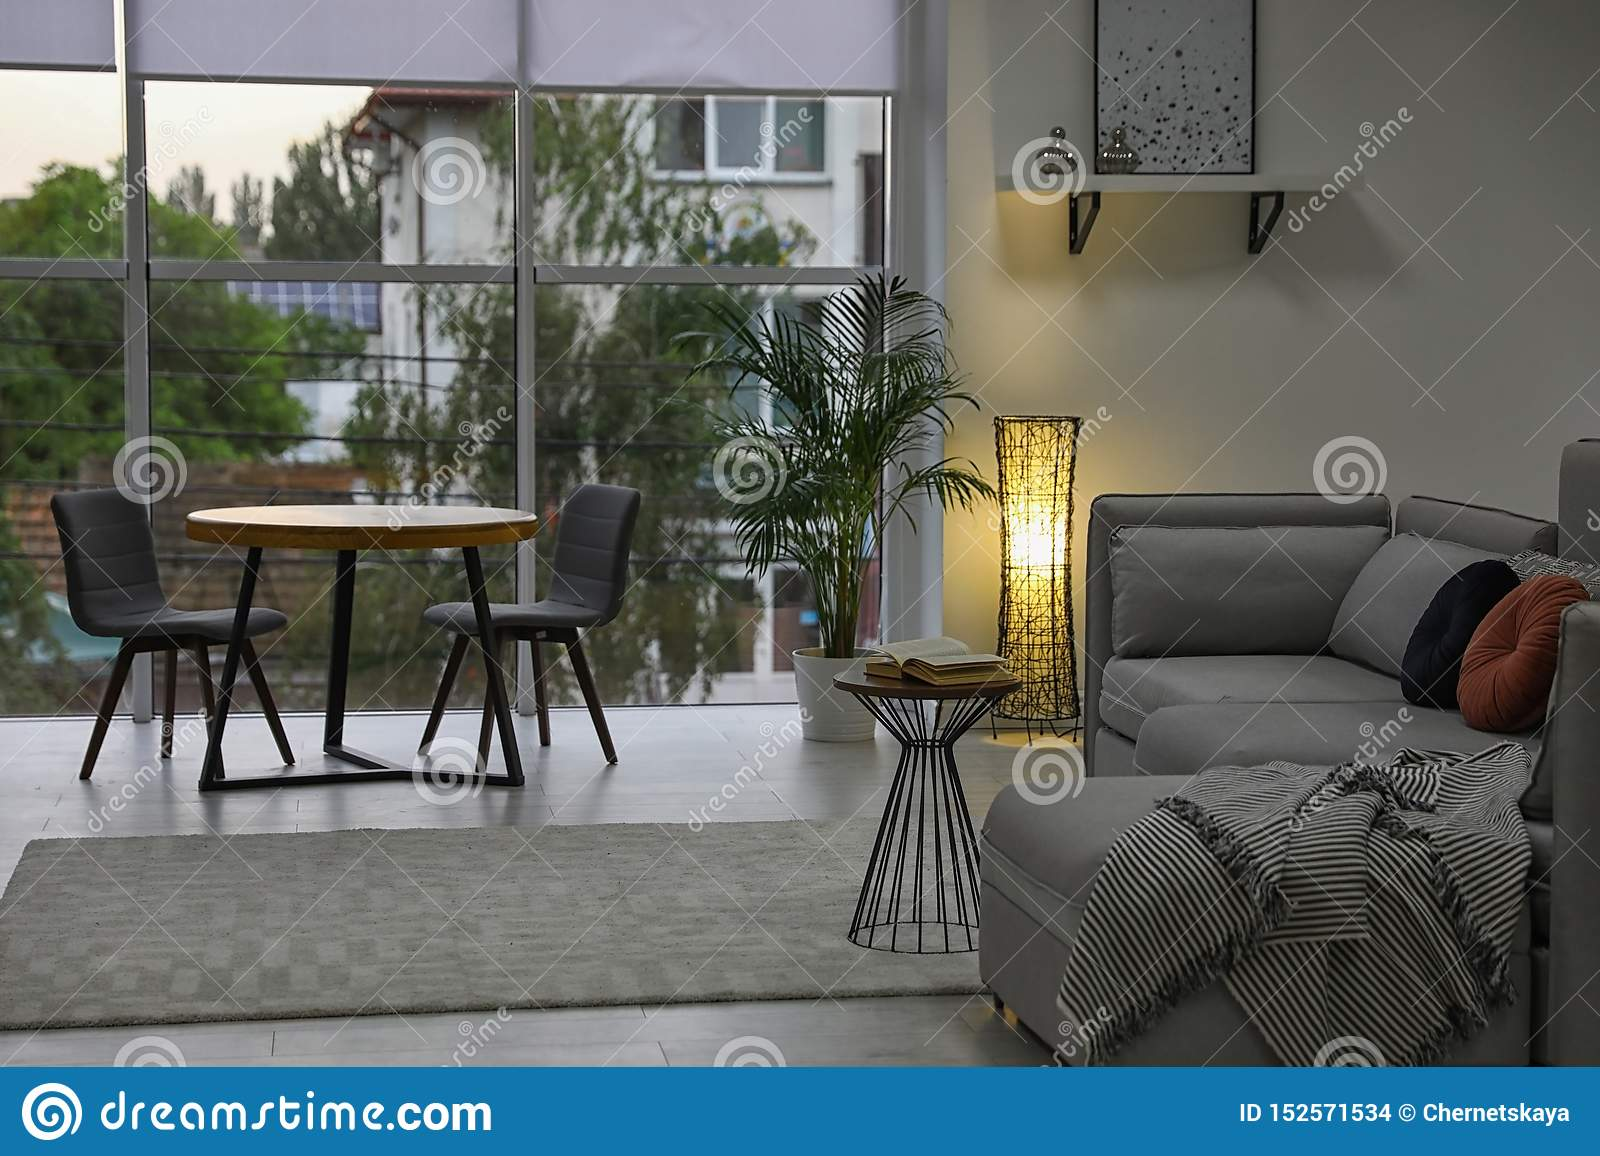 Cozy Living Room With Modern Furniture And Stylish Decor